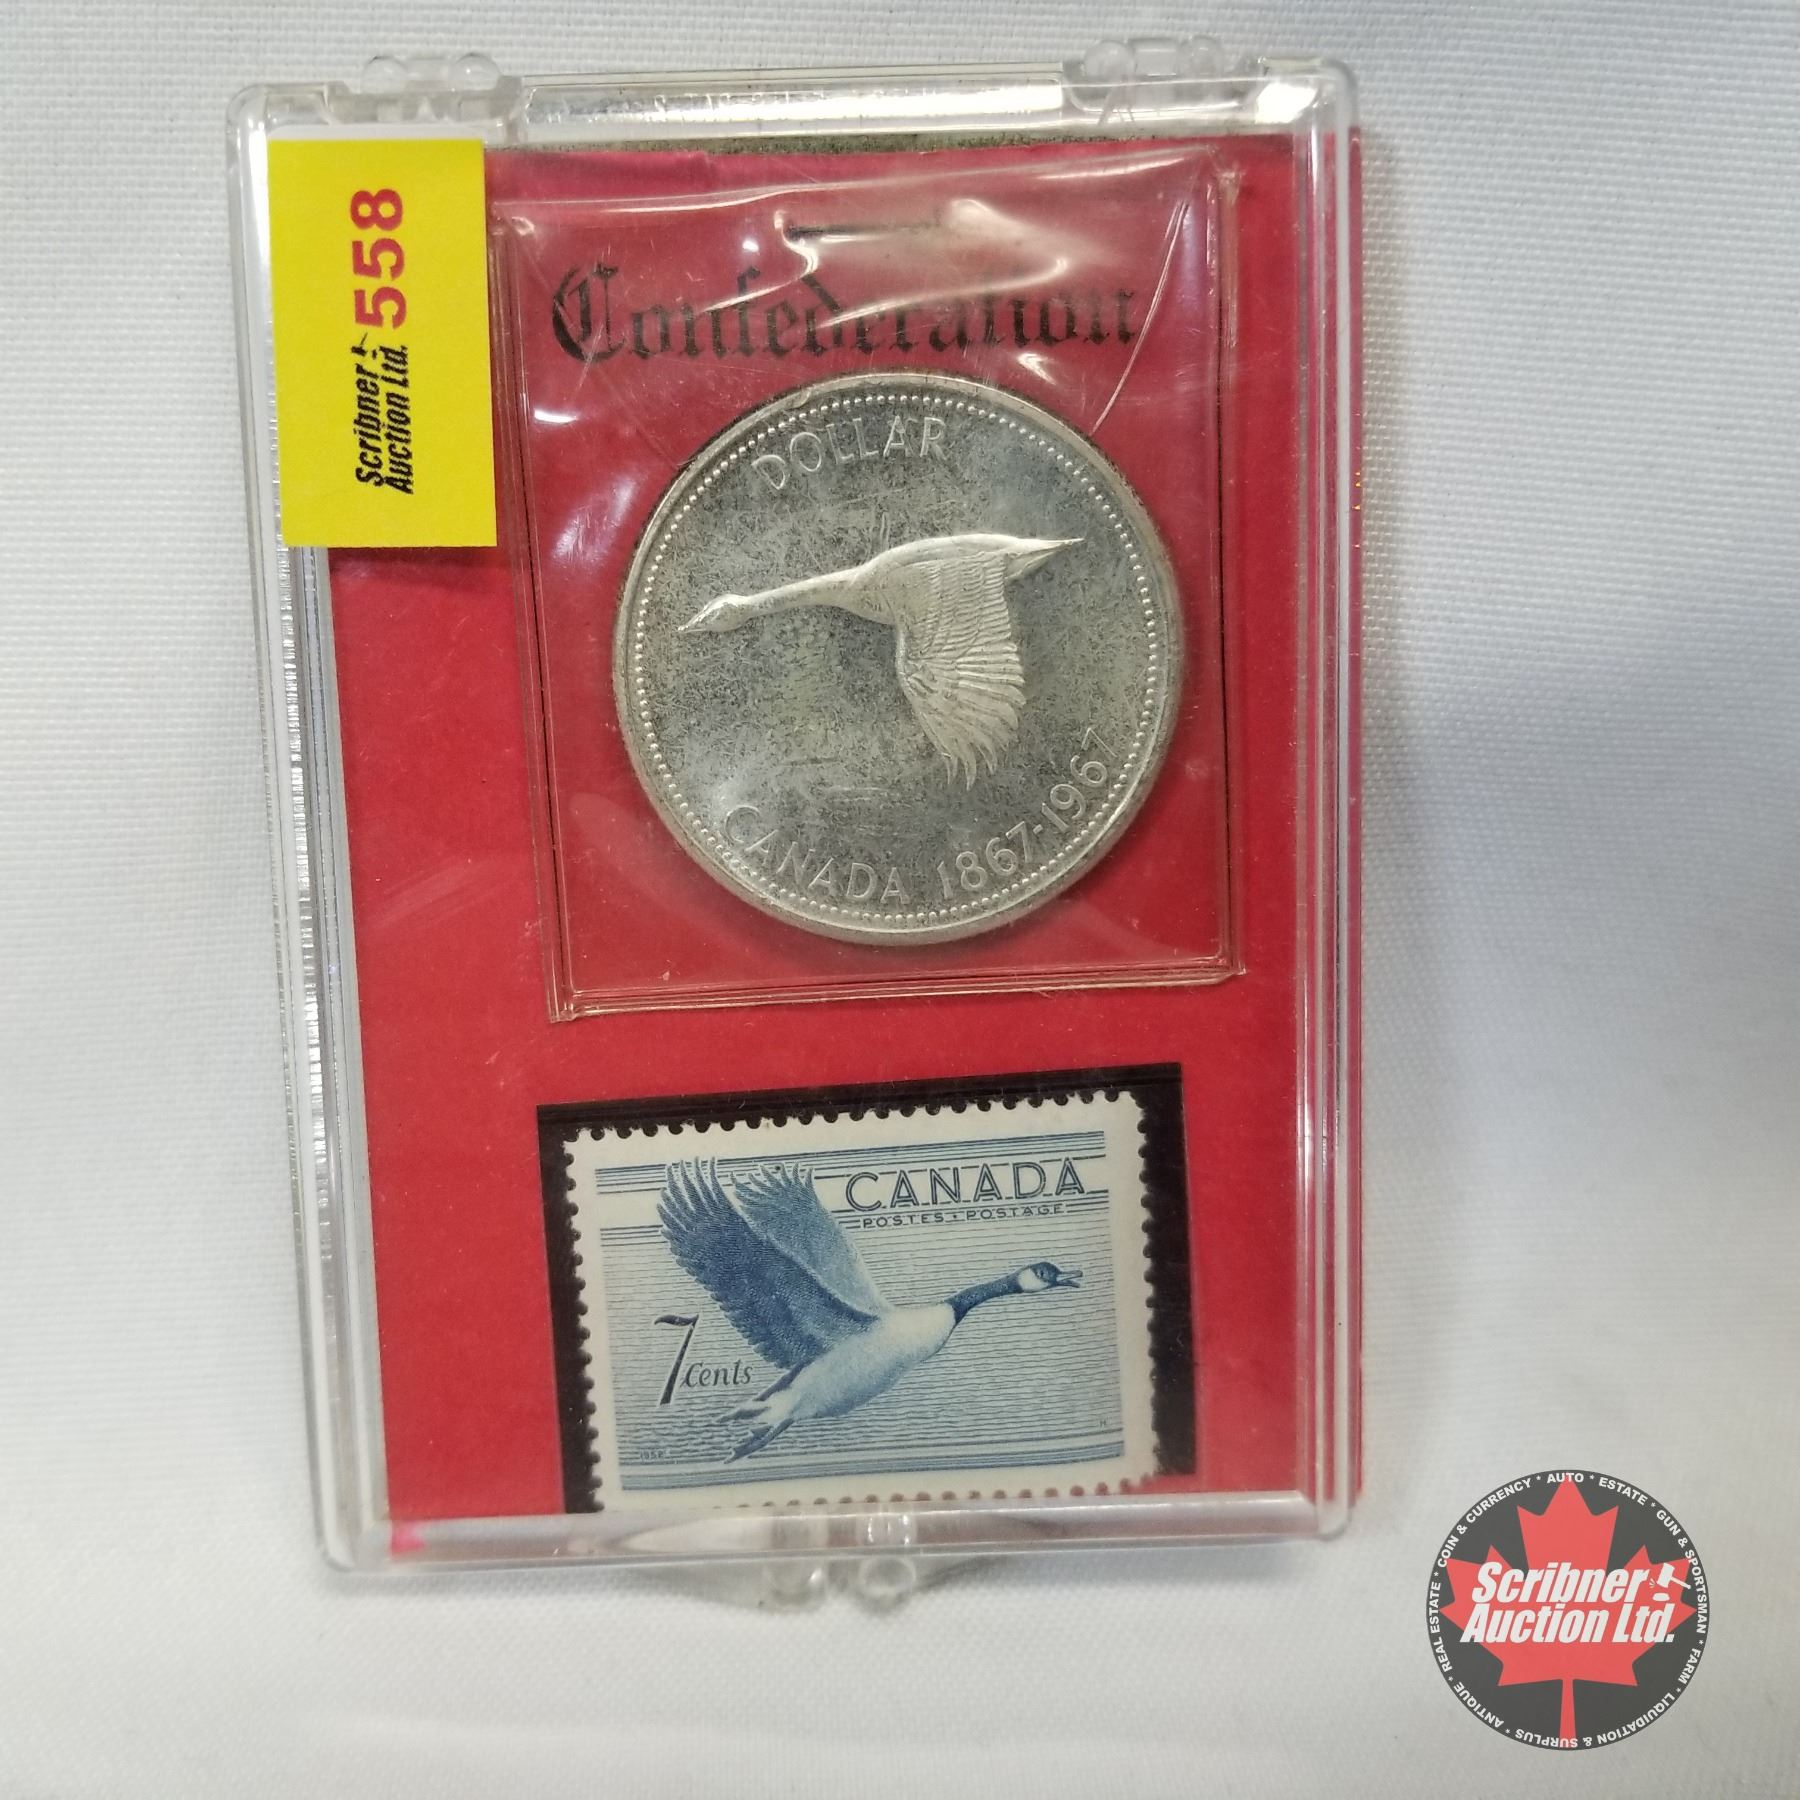 Canada One Dollar 1967 7 Cent Stamp Set